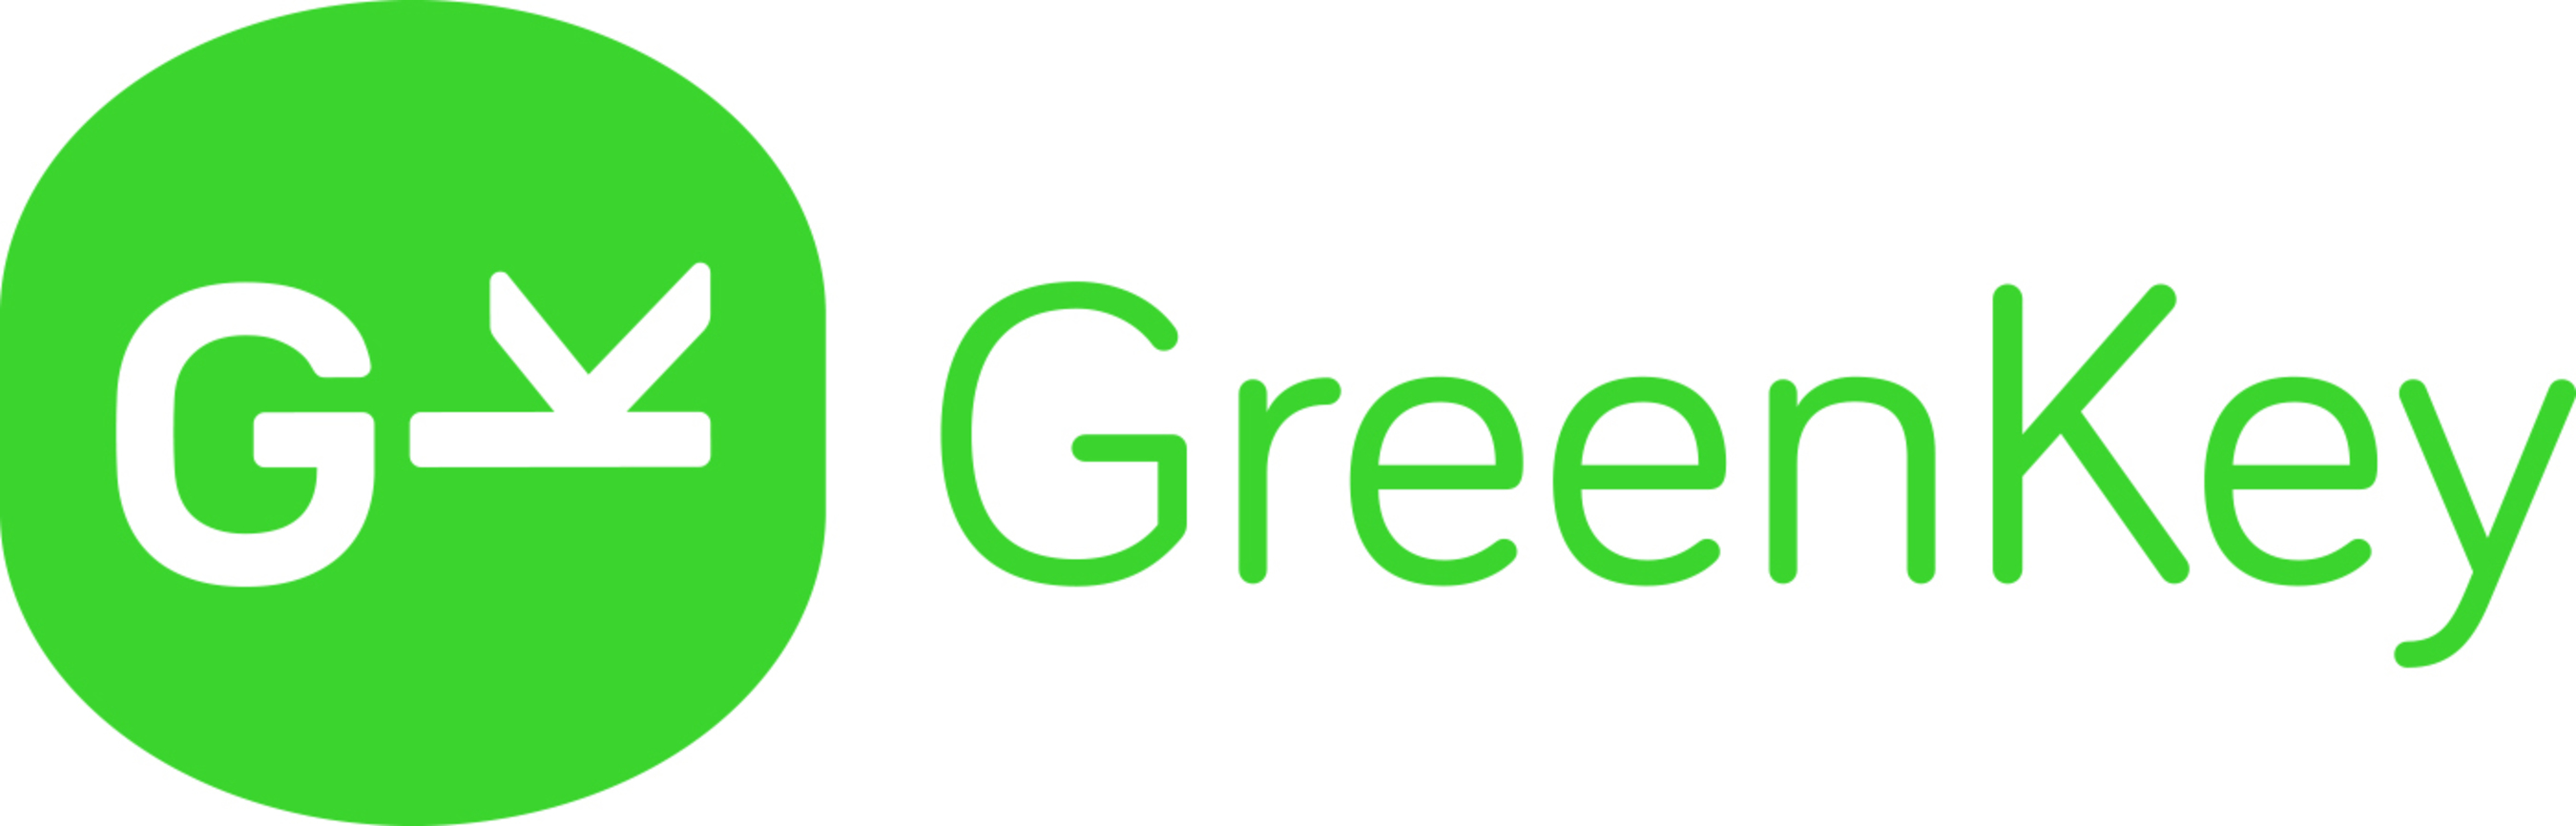 Green Key Technologies provides the most comprehensive, advanced voice workspace environment for firms involved in the financial markets. Green Key provides hundreds of the world's largest banks, brokerage firms and trading firms with softphone capabilities over a secure voice network without hardware, enabling users to access the software from any device and push-to-talk concurrently in real time with an unlimited number of users. (PRNewsFoto/Green Key Technologies)